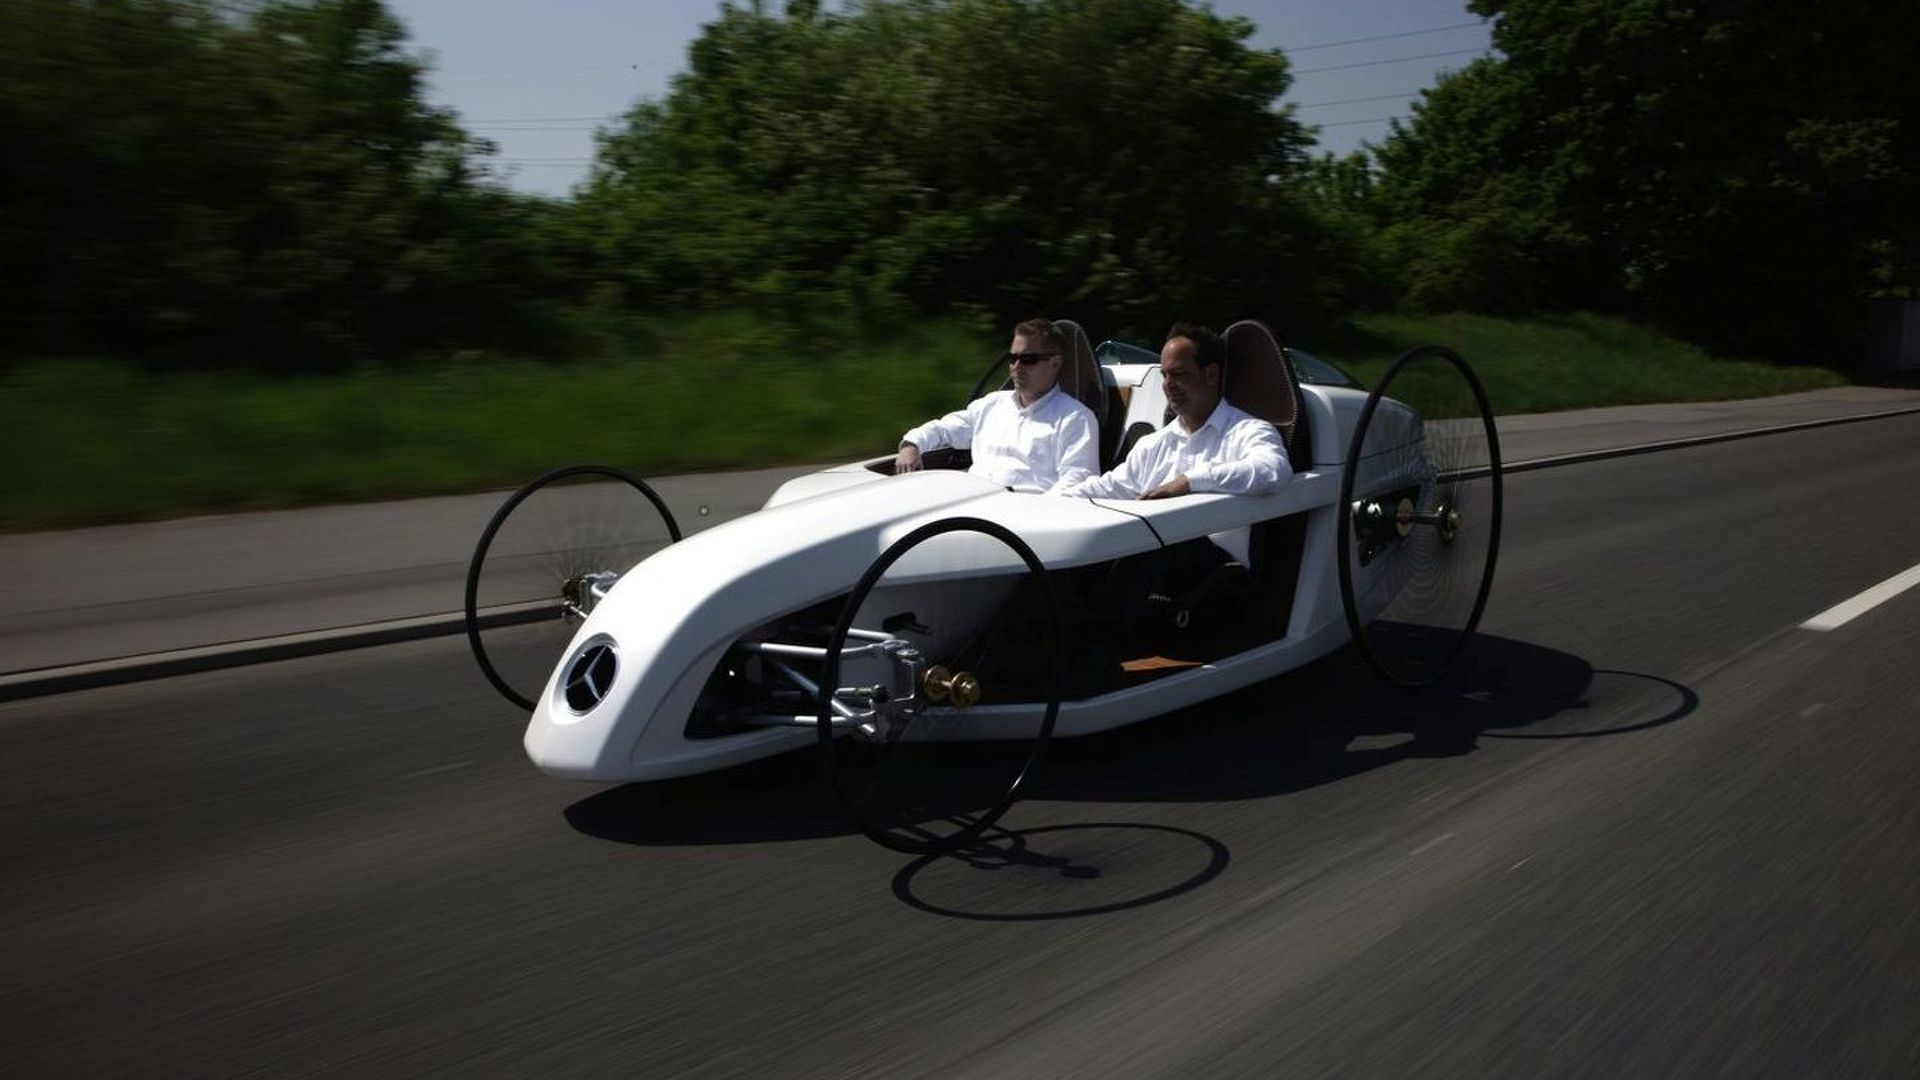 Mercedes F-CELL Roadster on the historic route of Bertha Benz